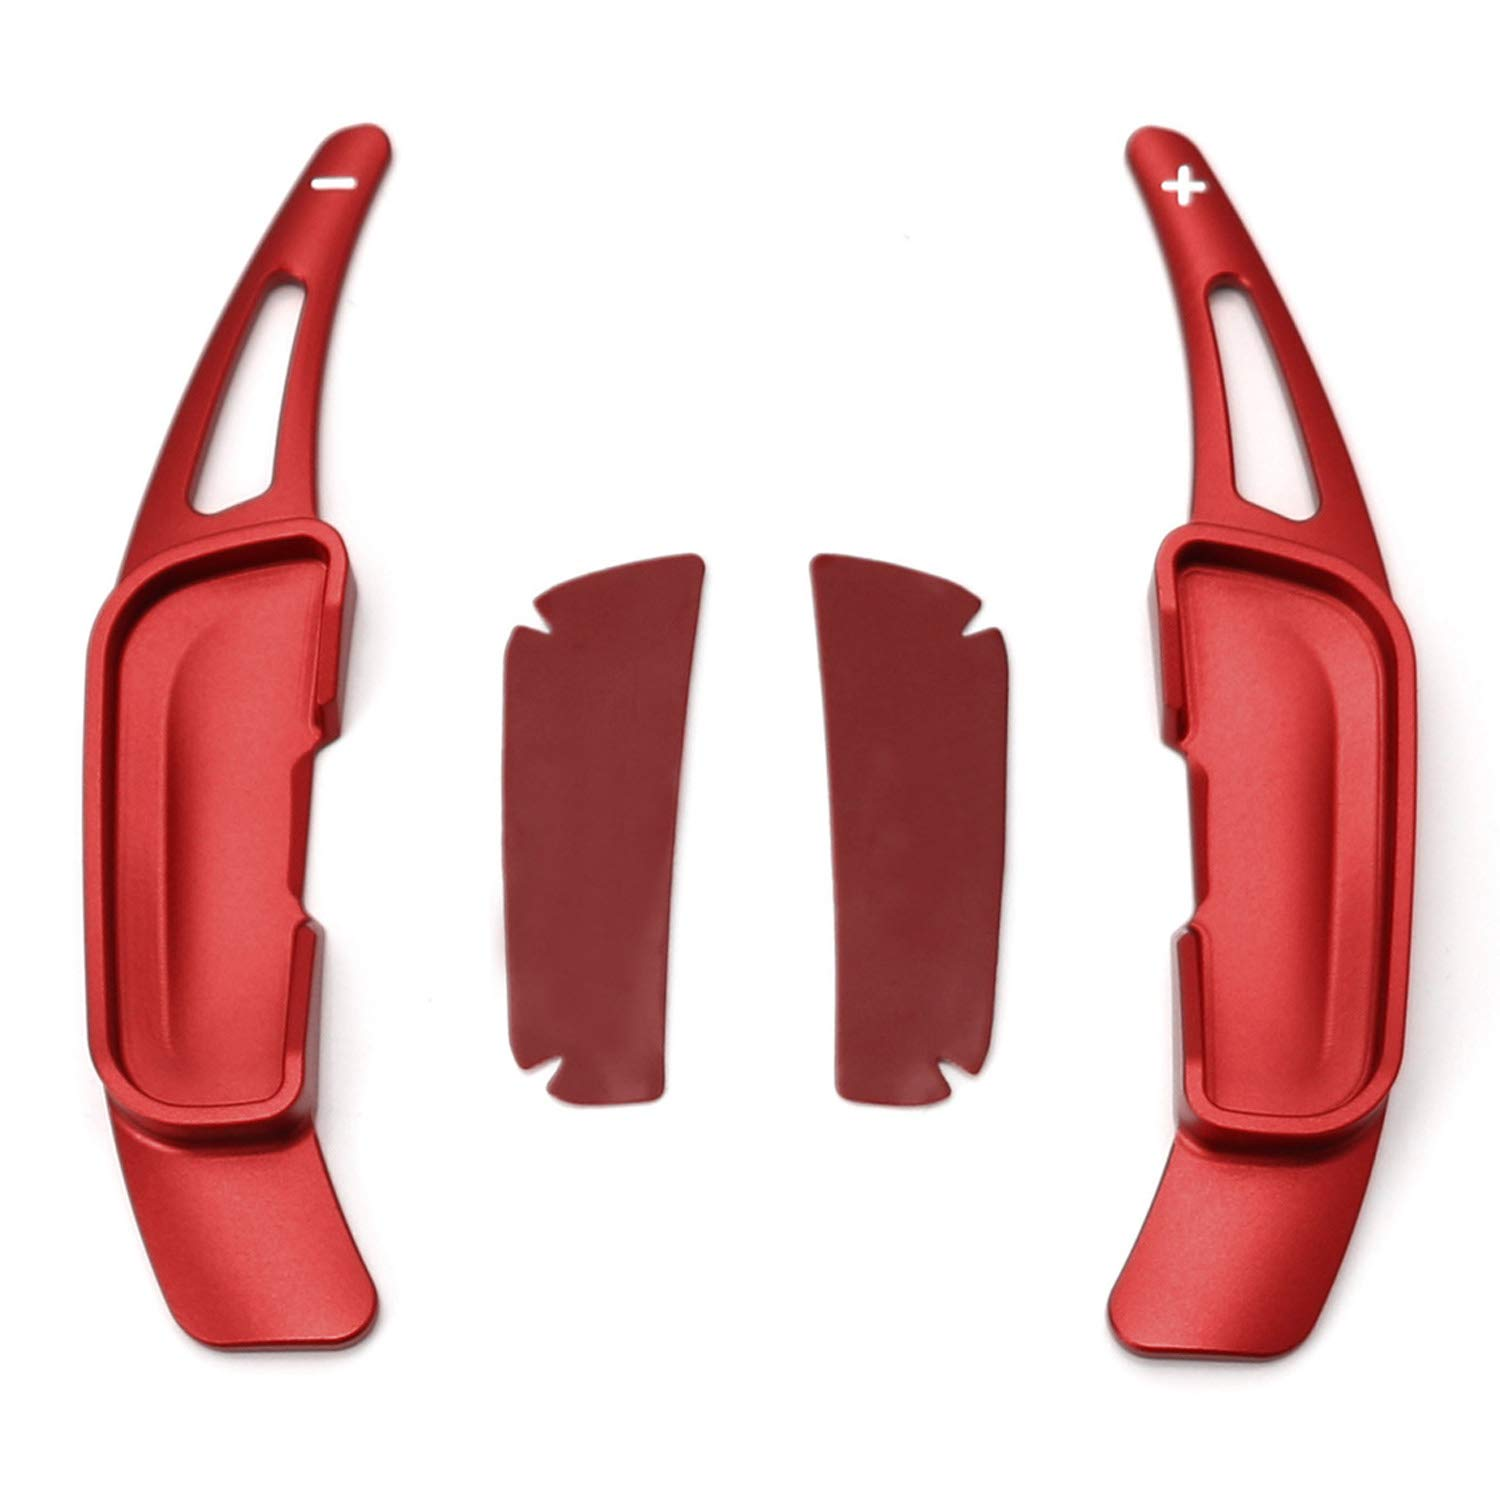 iJDMTOY Red Aluminum Steering Wheel Paddle Shifter Extension Covers For Mazda 3 6 CX-3 CX-5 CX-9 MX-5